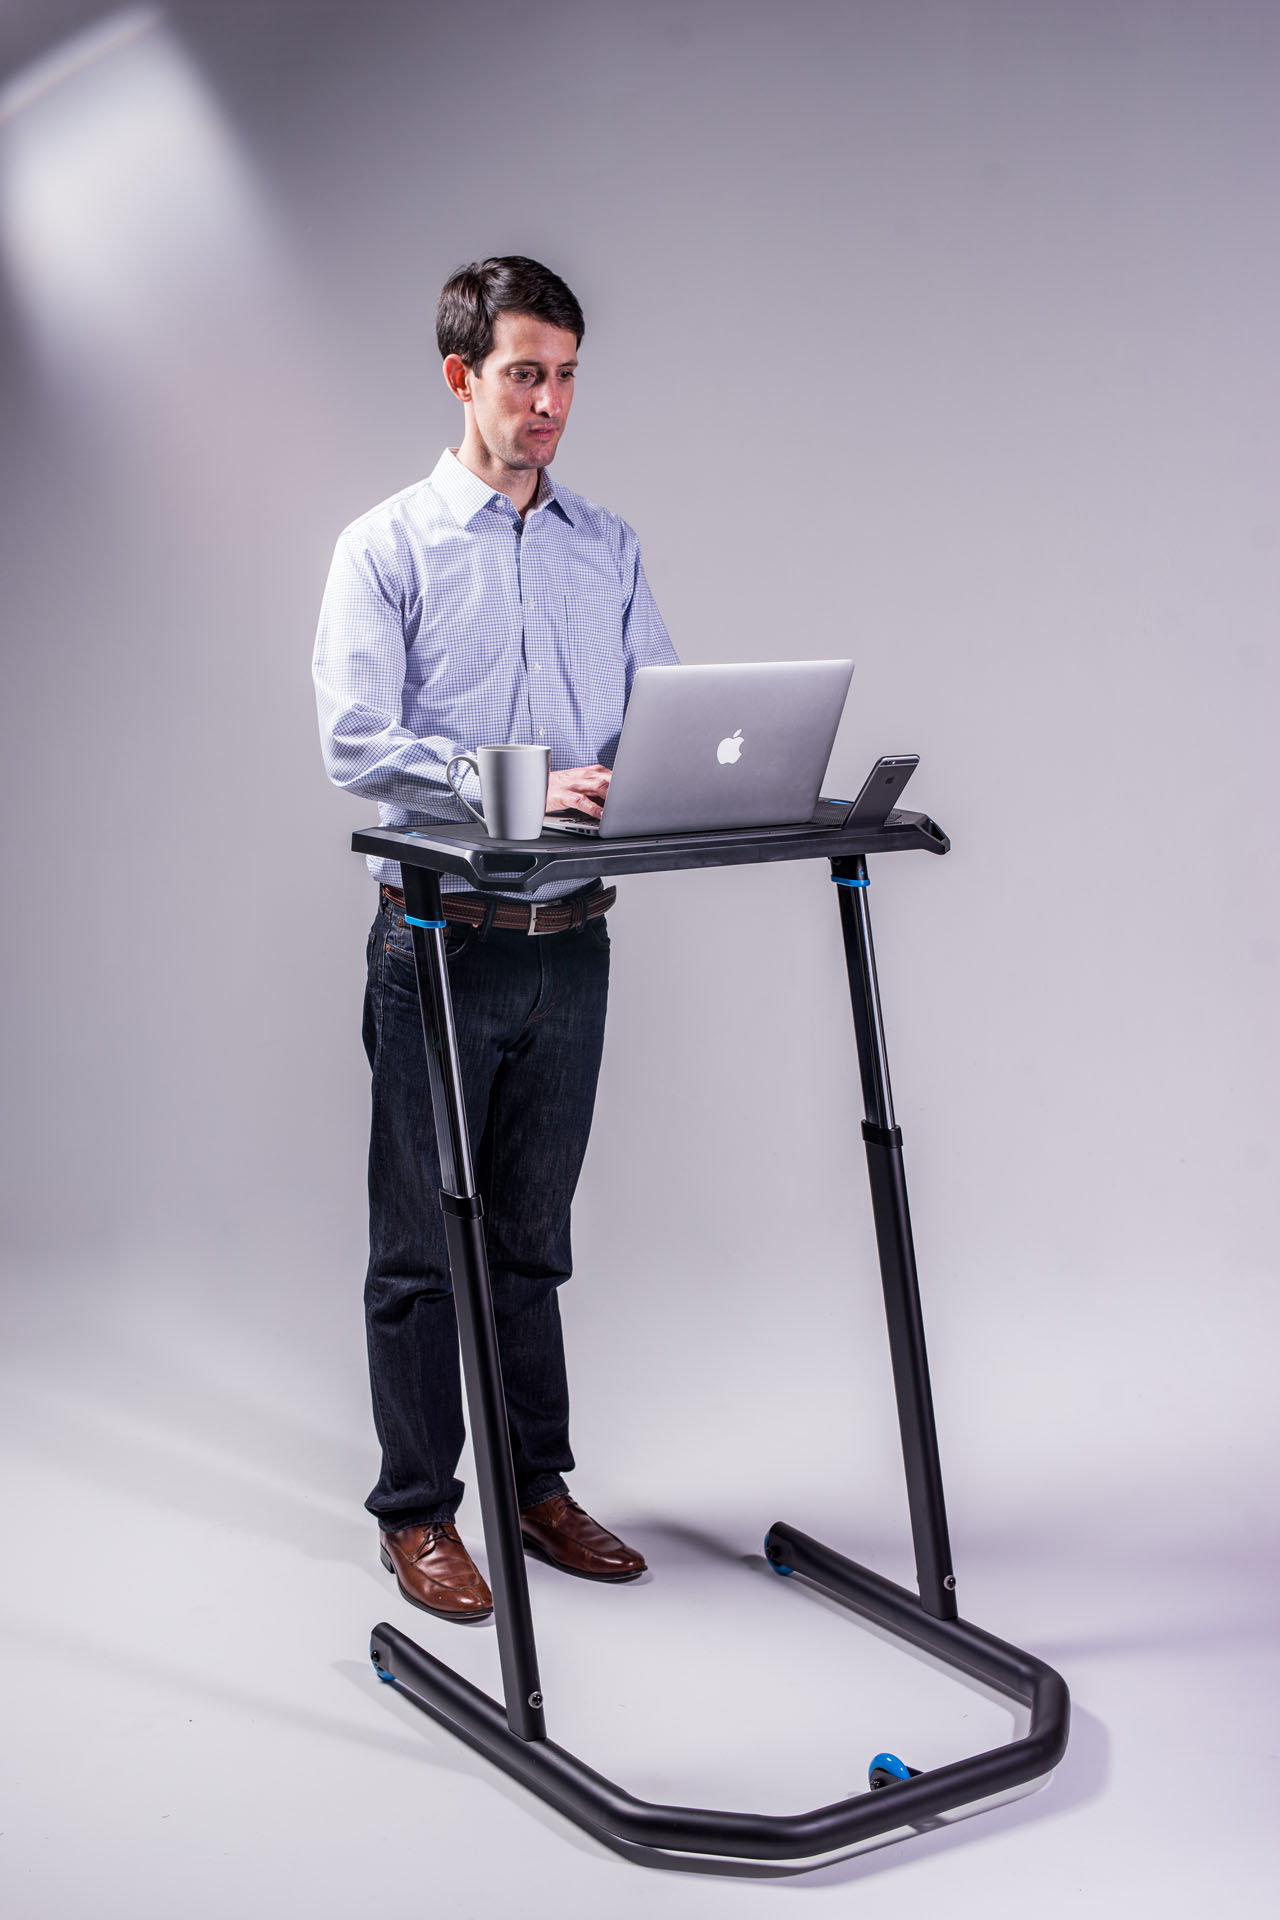 KICKR Indoor Cycling Desk-Picture-24